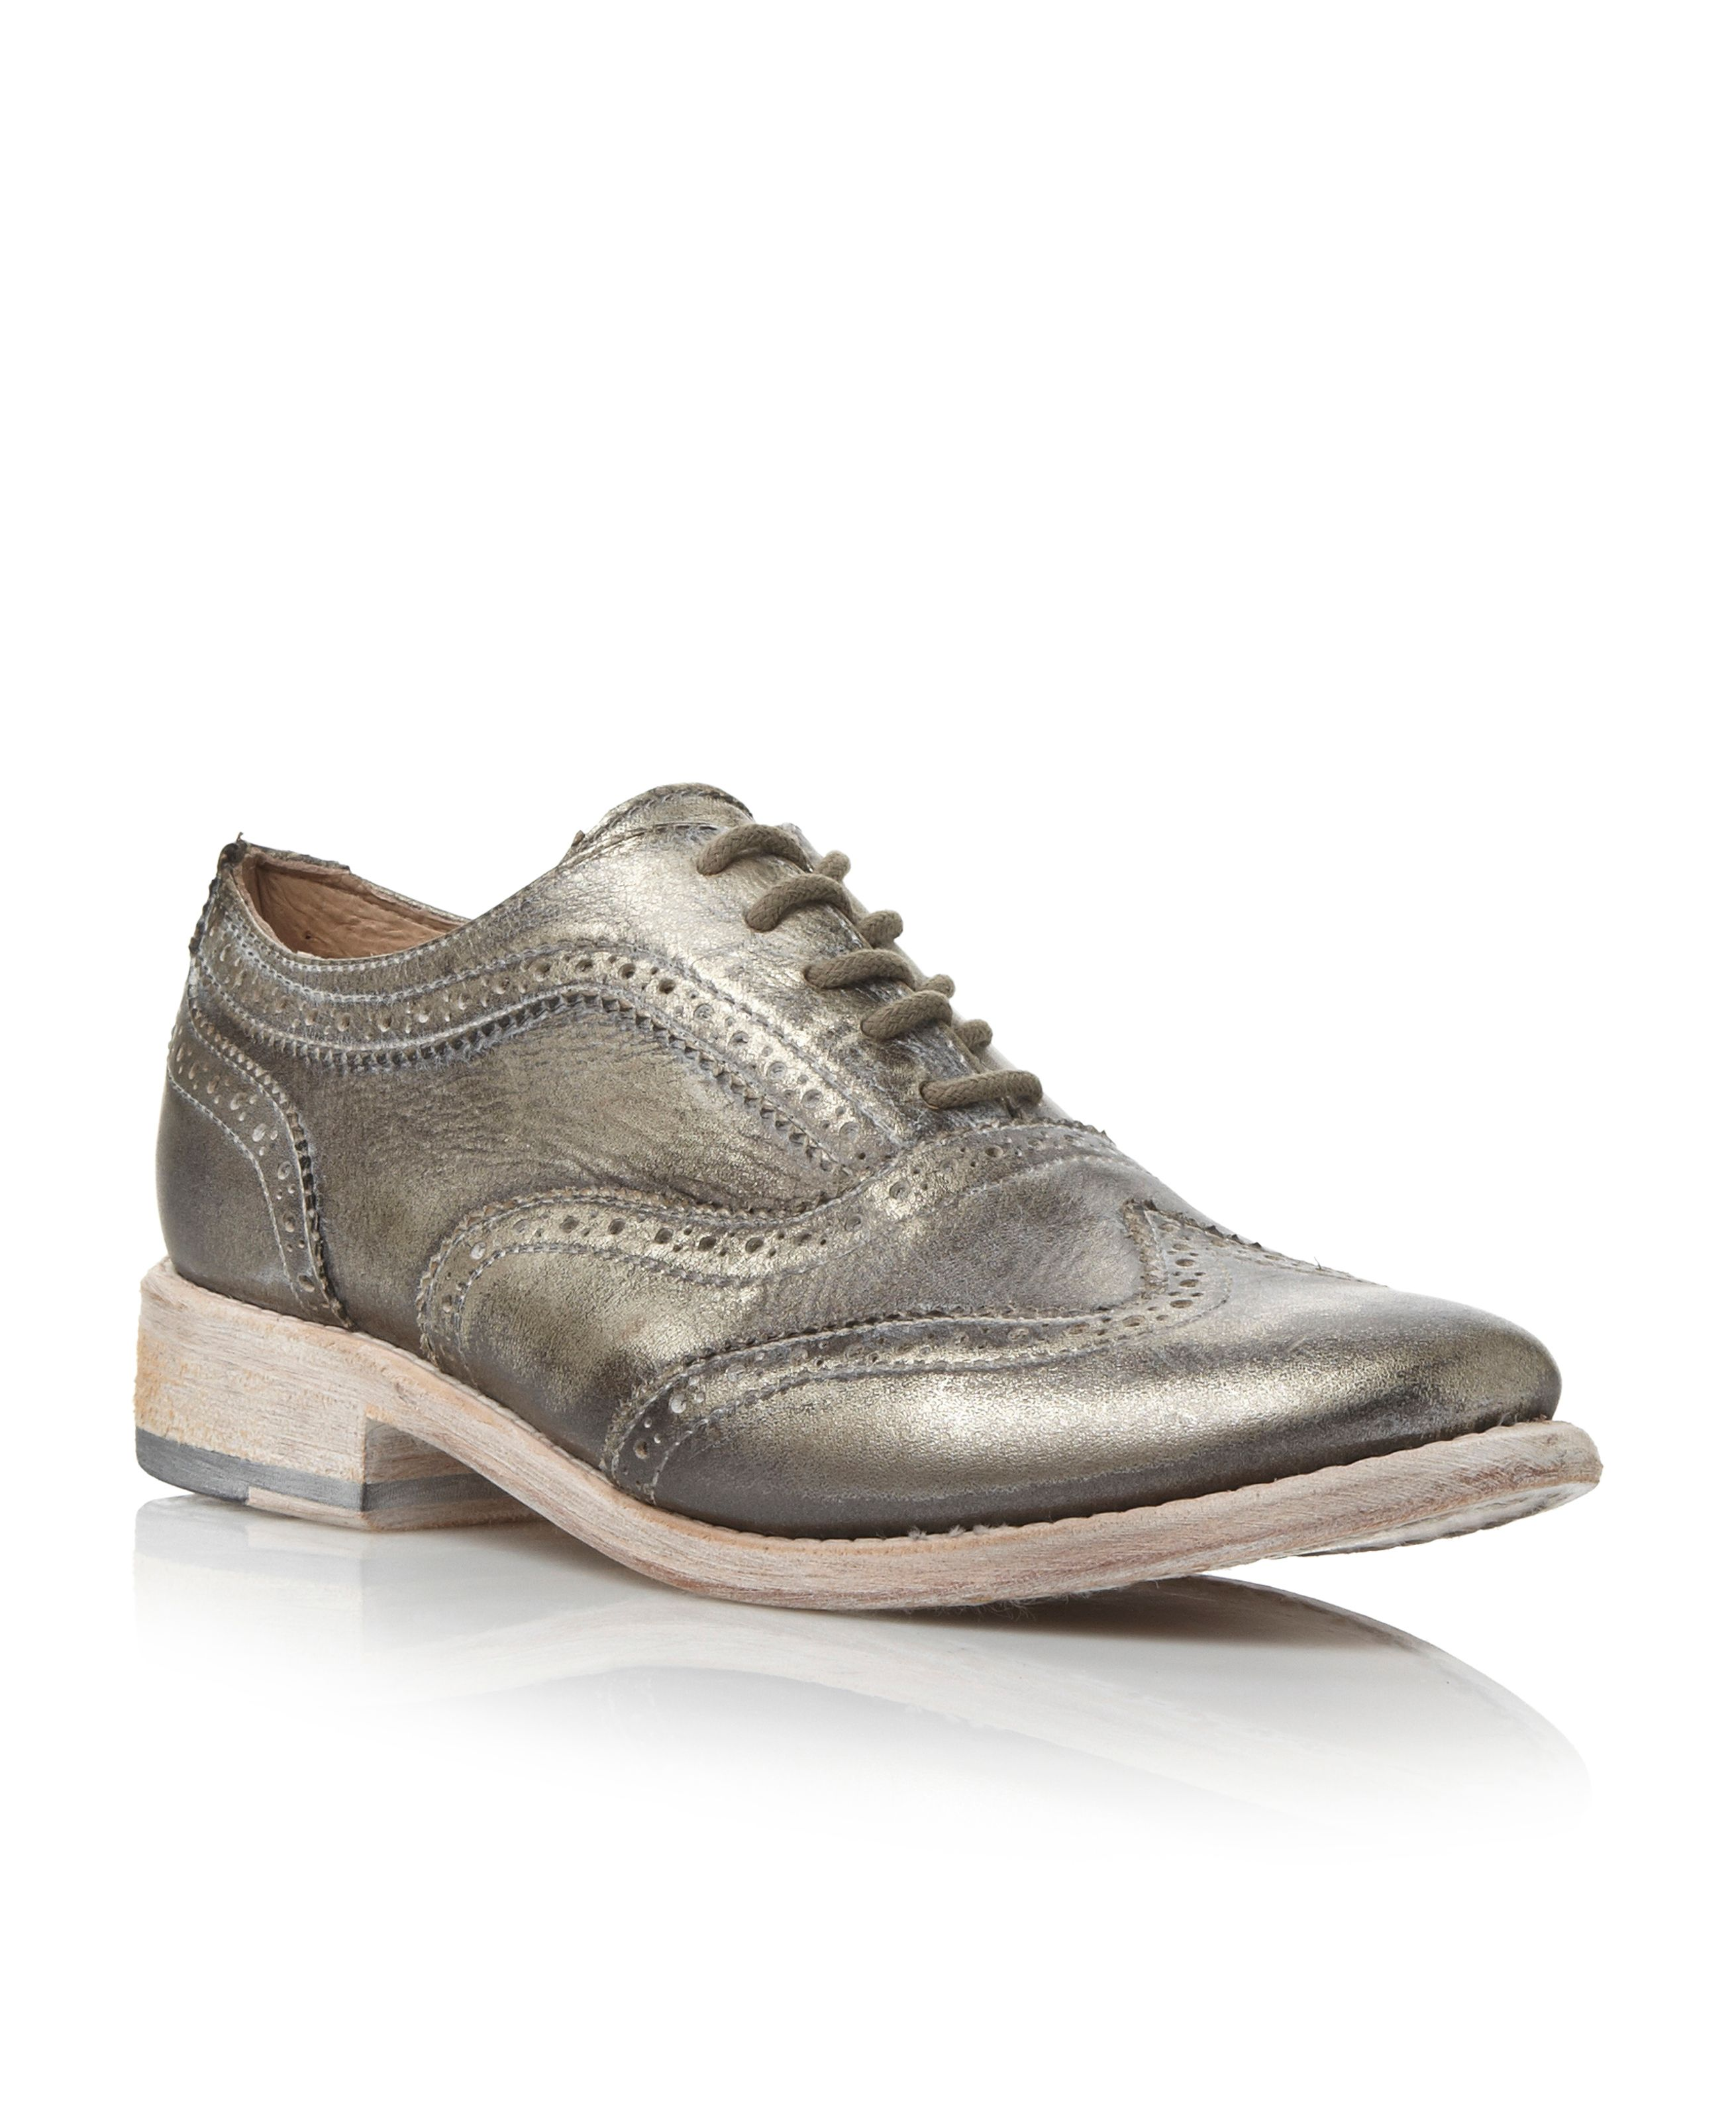 Lace up brogue shoes